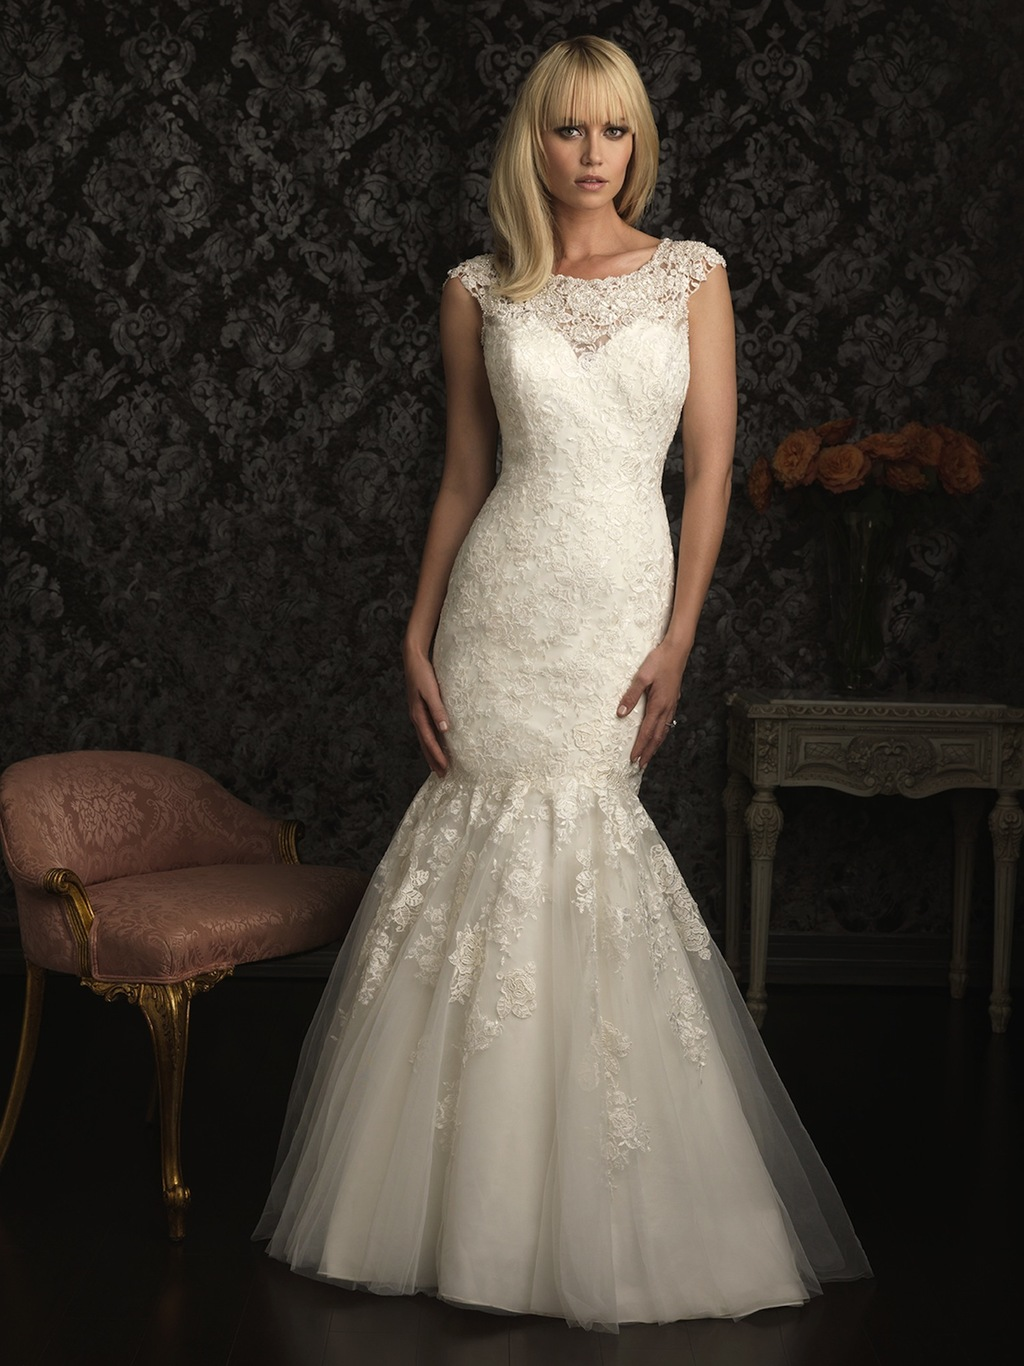 Allure-bridals-wedding-dress-bridal-gown-allure-collection-2013-9025f.full